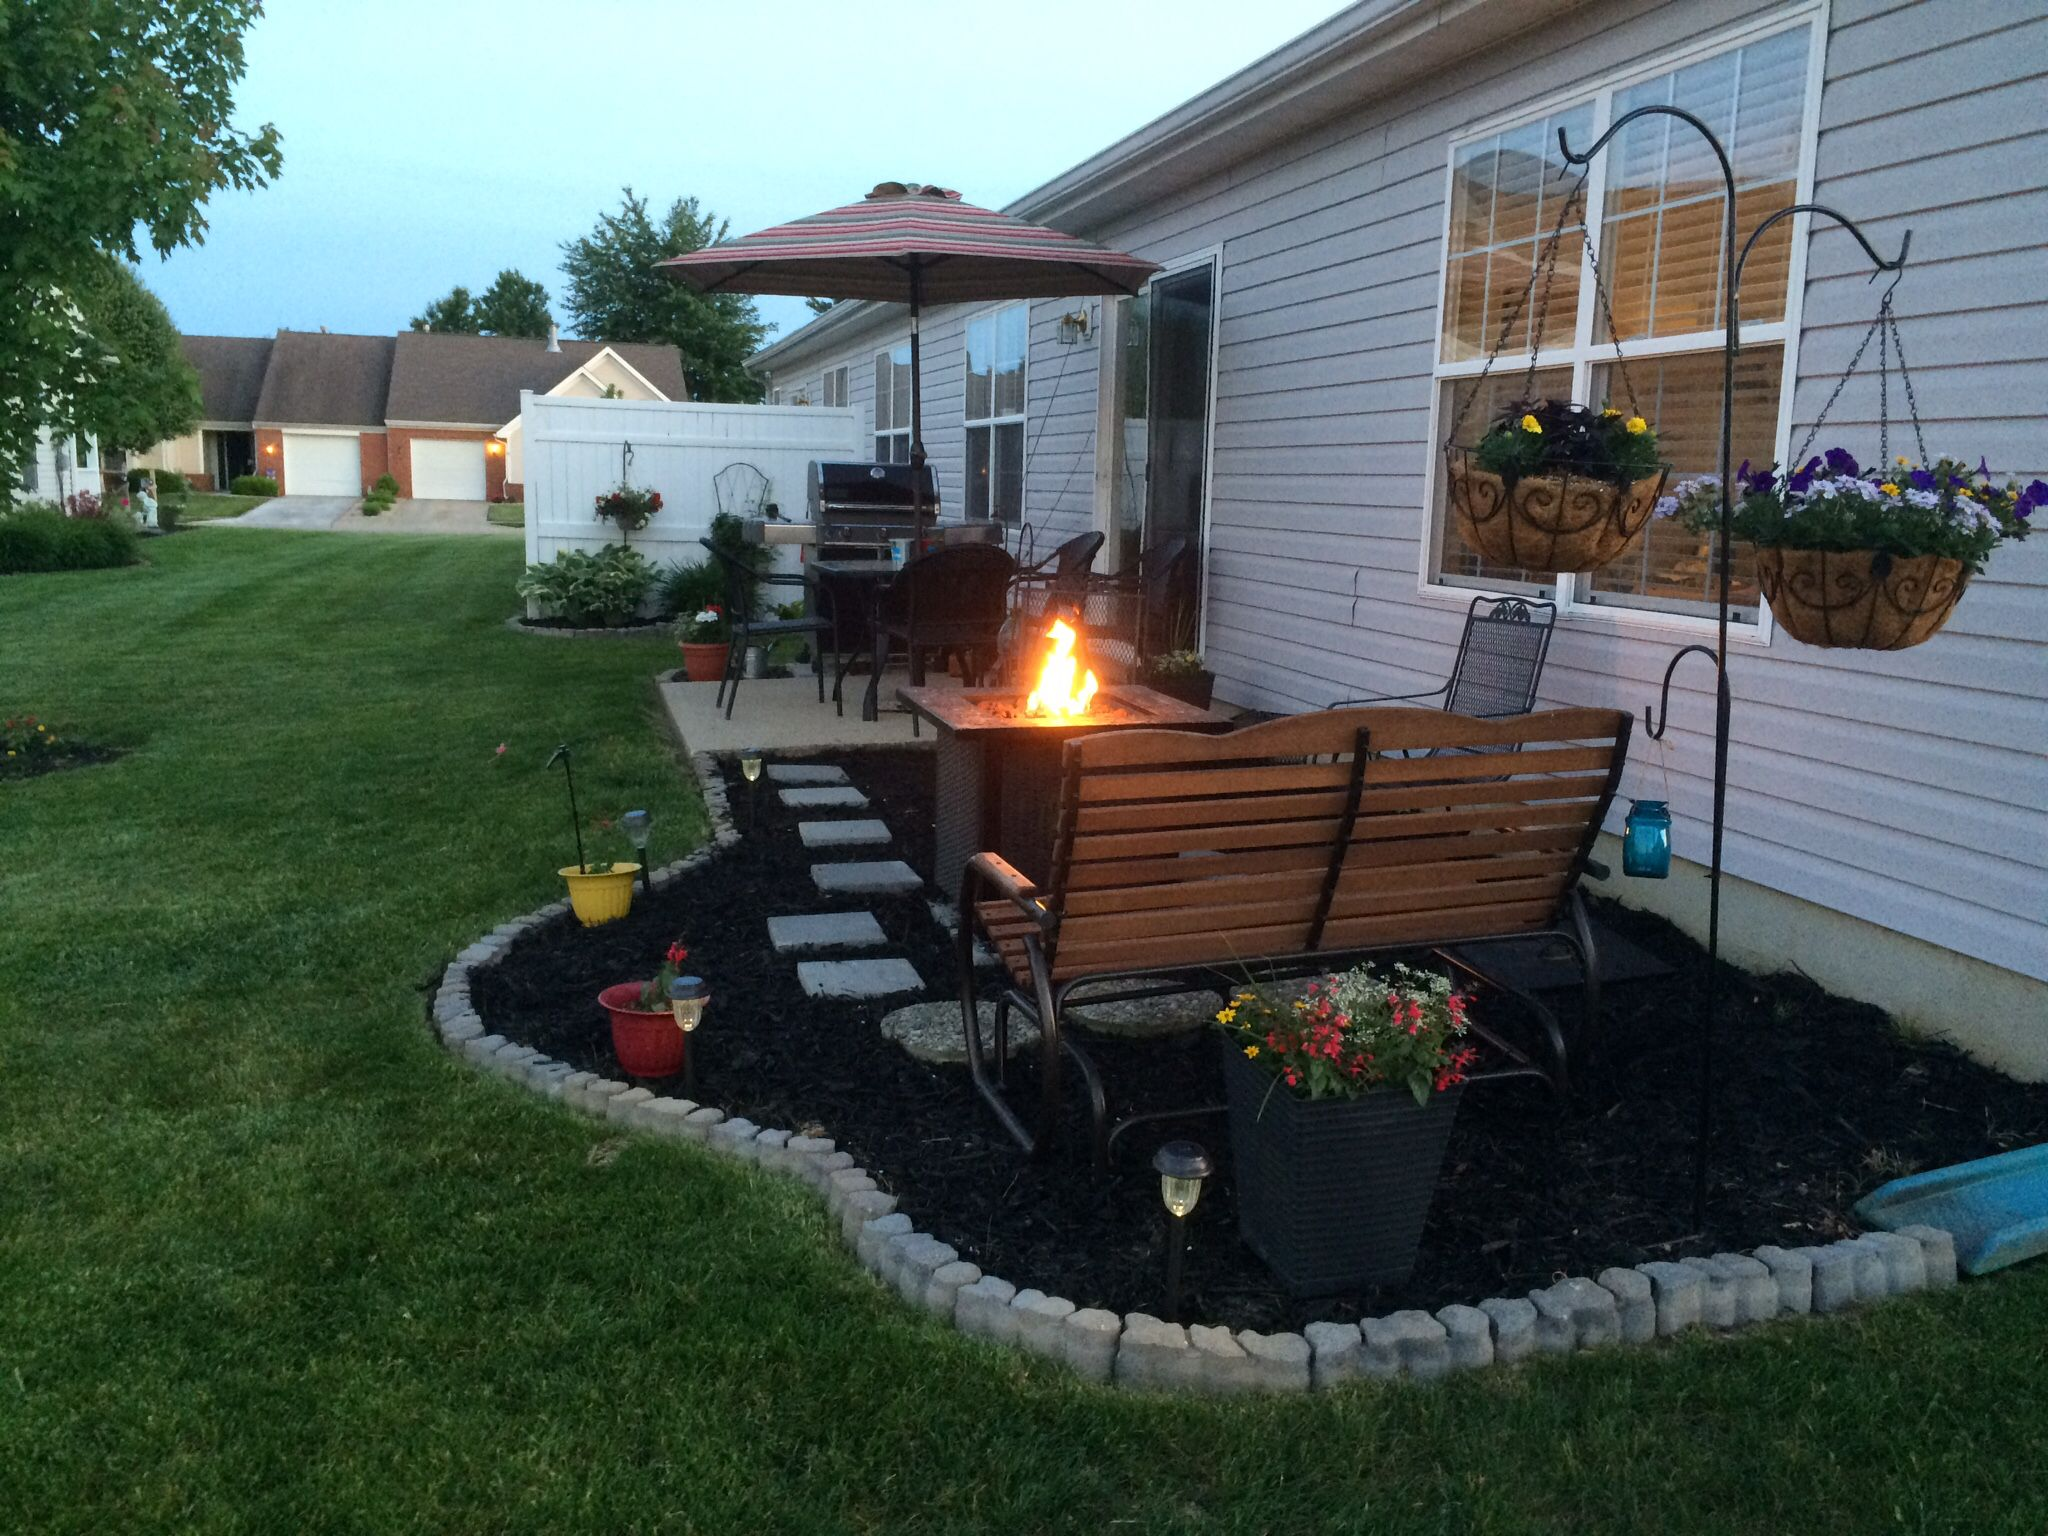 Low cost patio extension, using mulch, paver steps, and